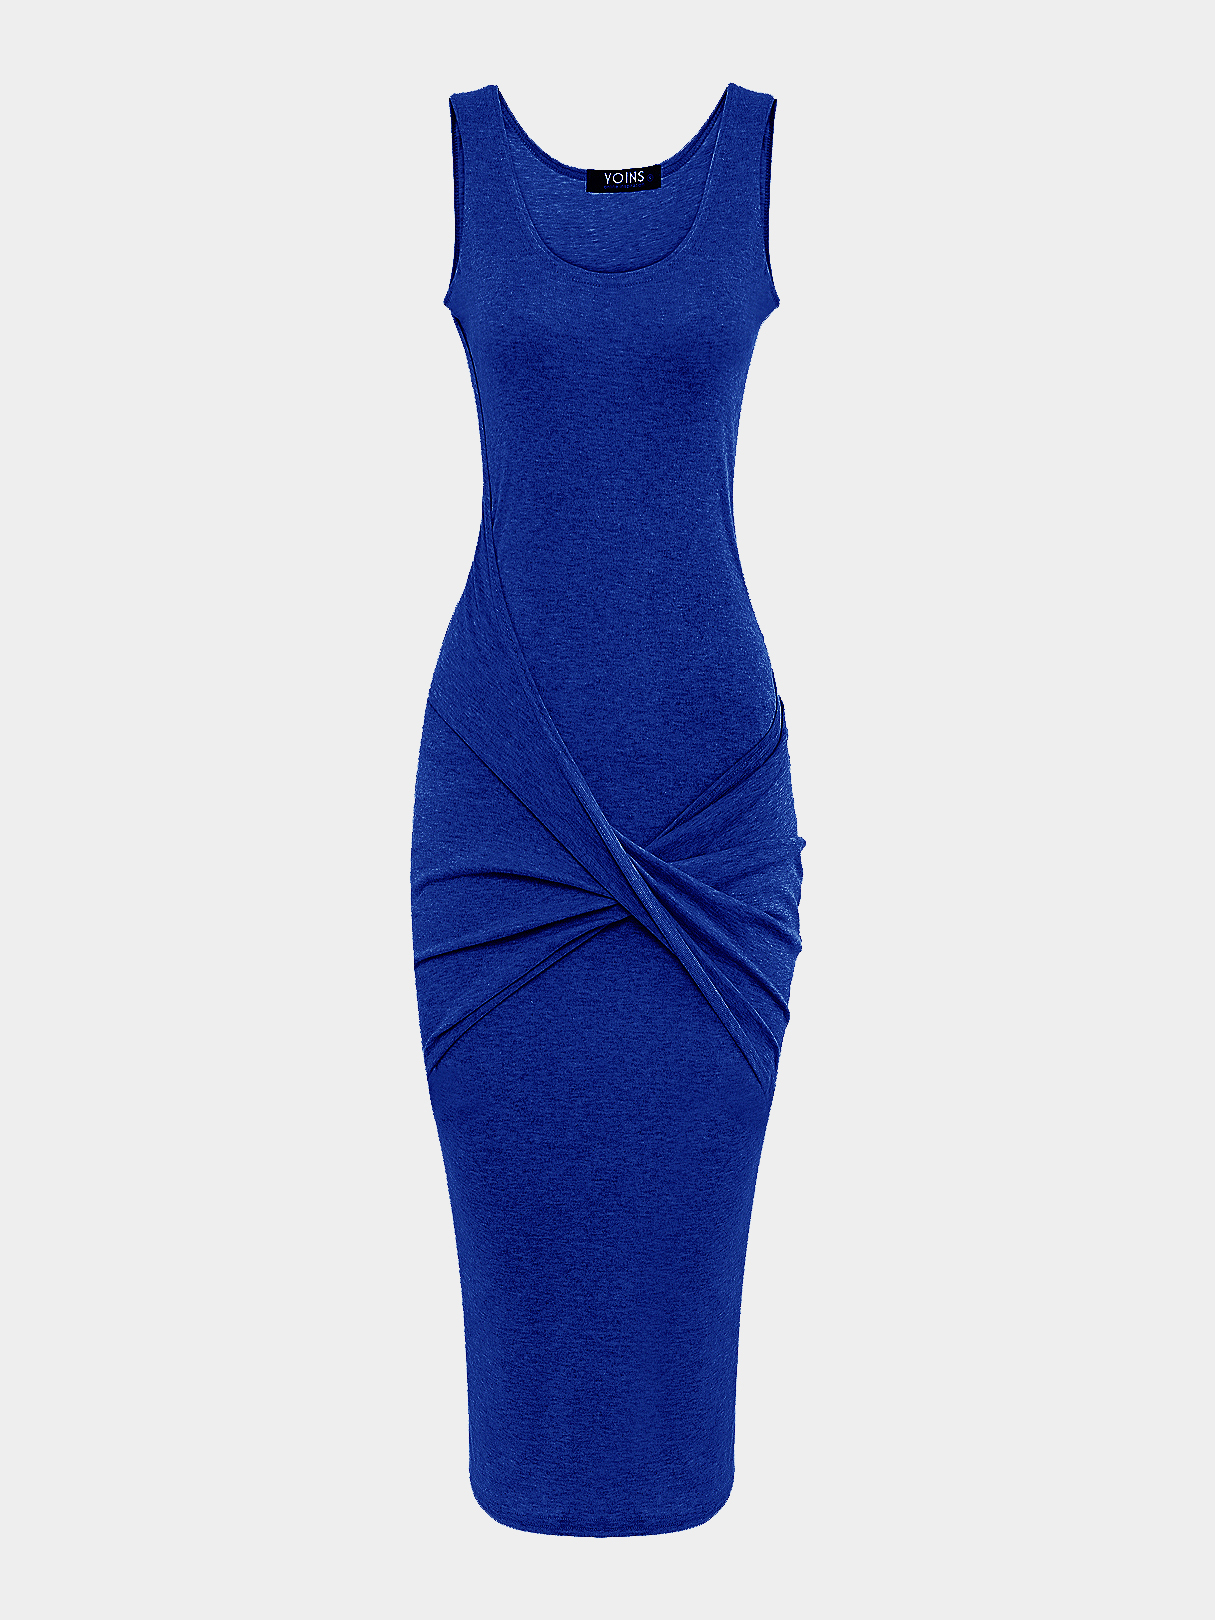 Blue Cross Front Bag Hip Midi Dress